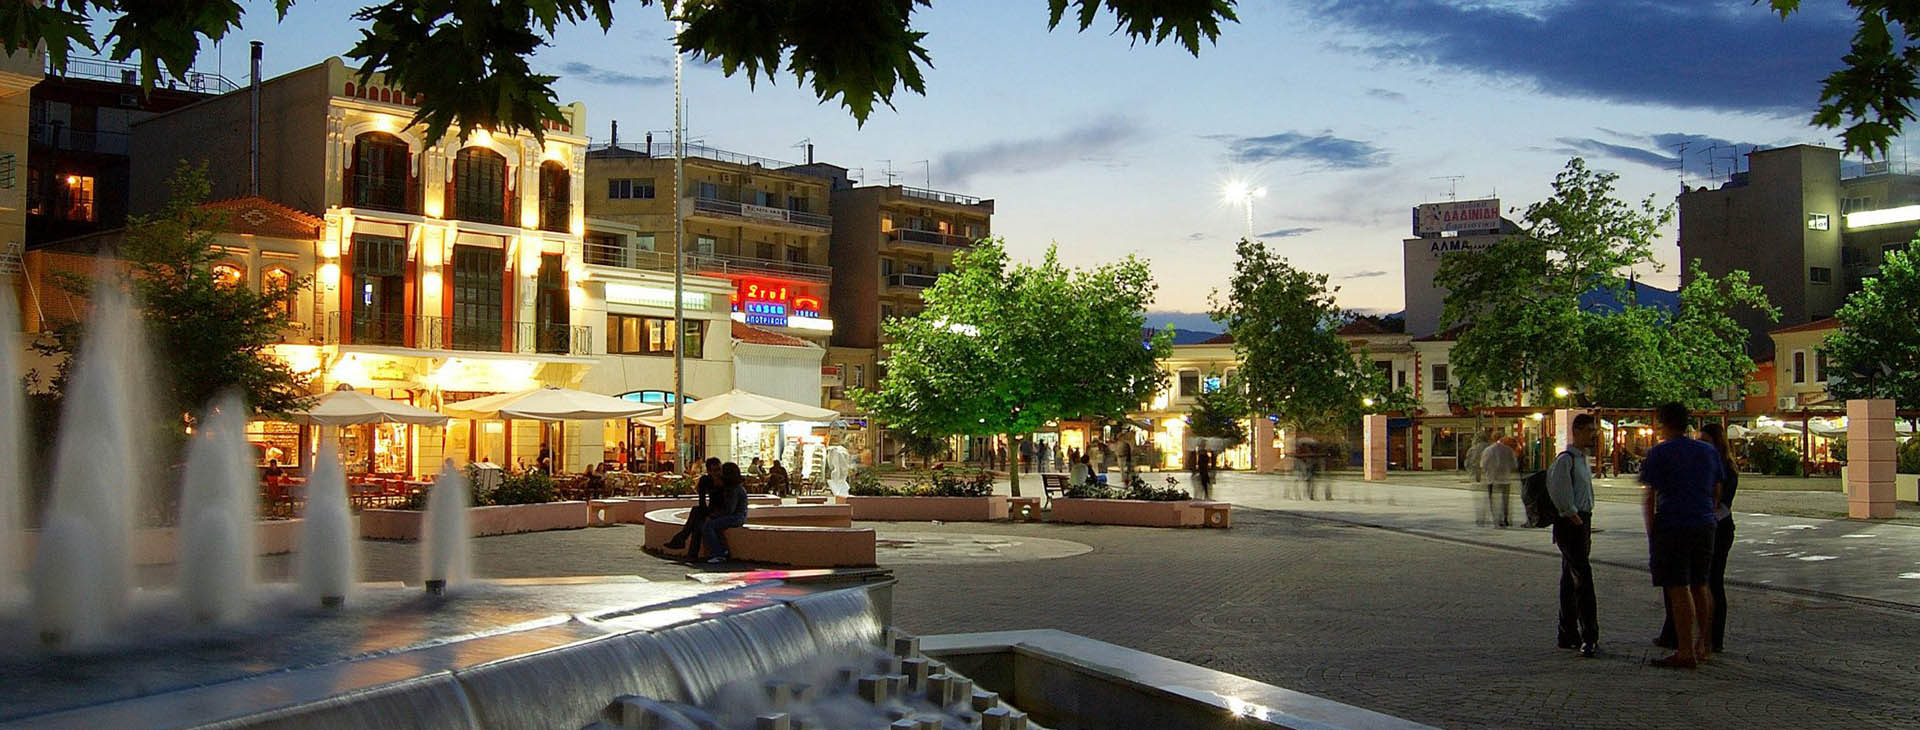 Square at Komotini, Rodopi